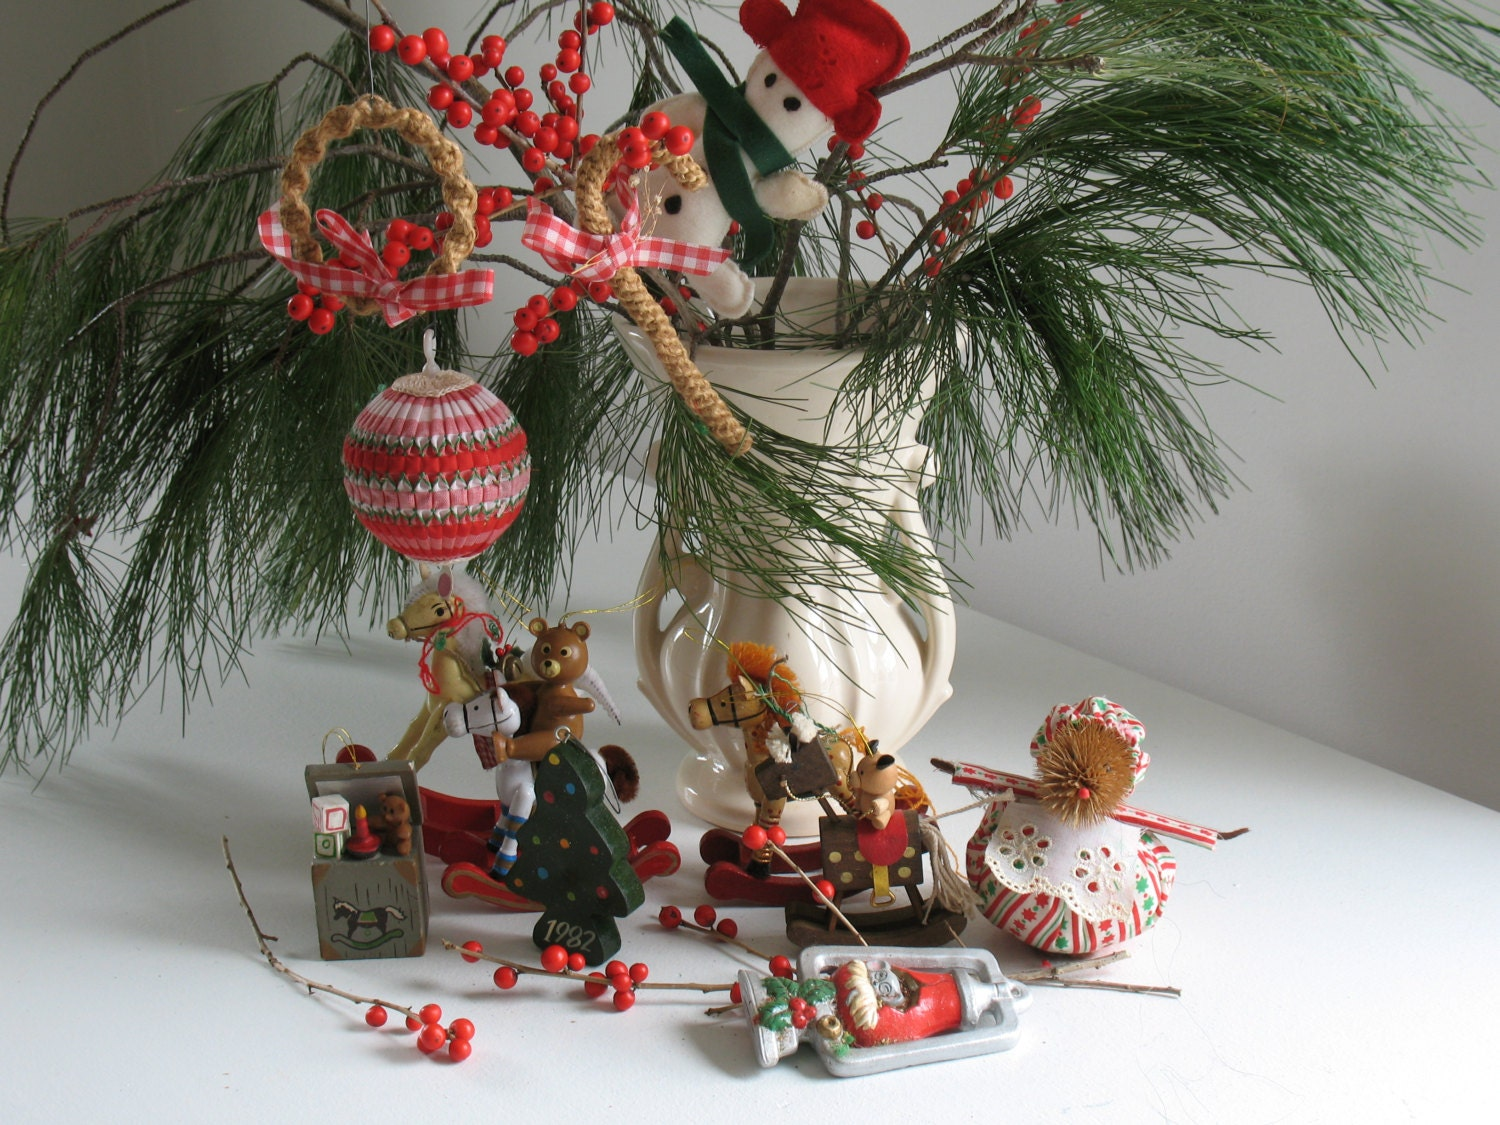 Vintage 1980s Country Christmas tree ornaments set by